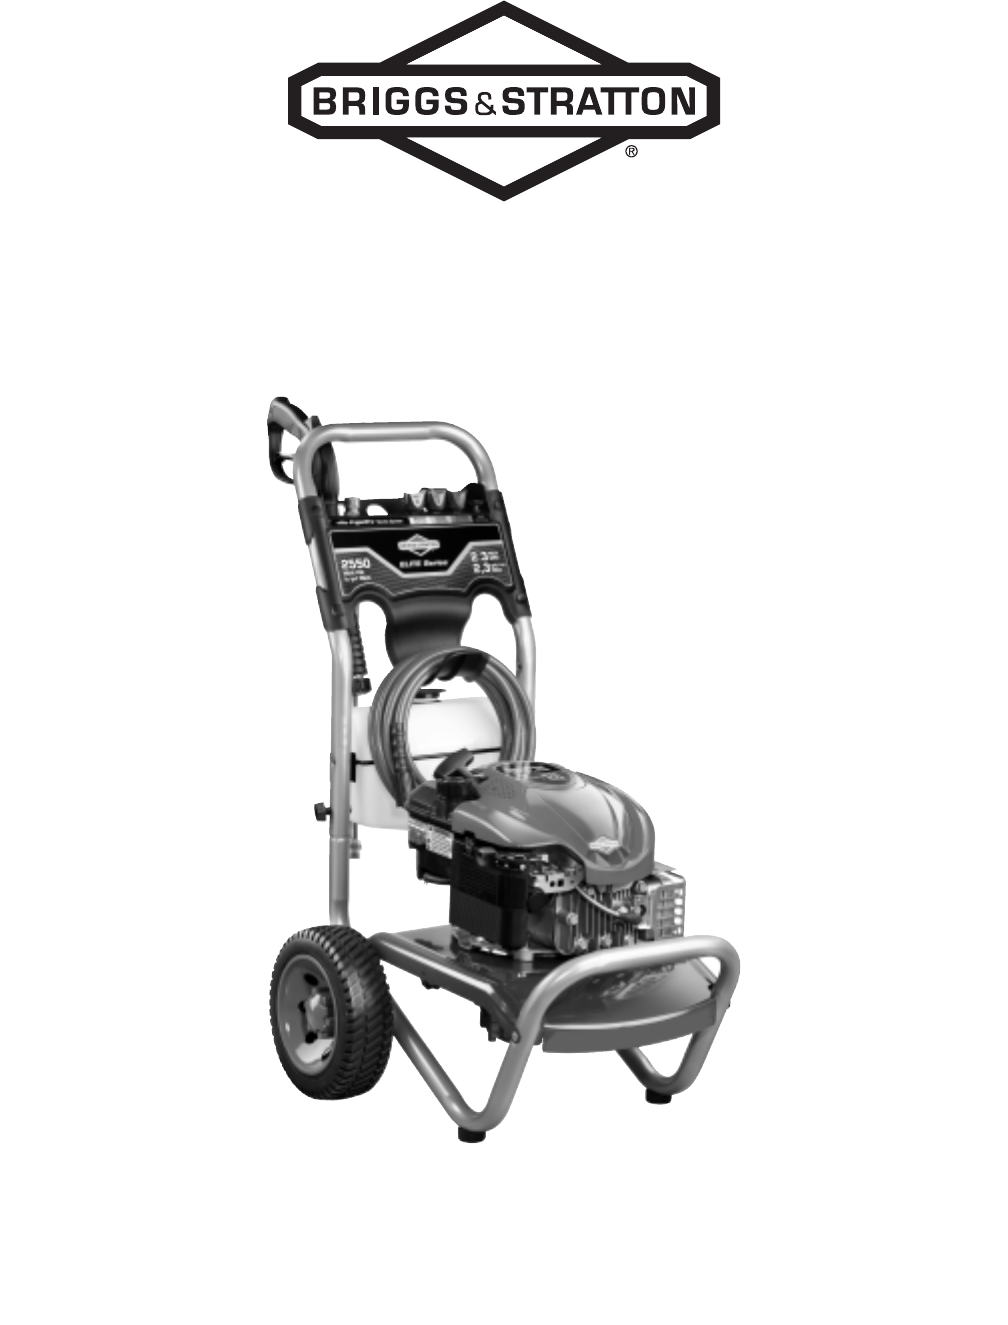 Husky gas 2600 psi pressure washer owners manual.